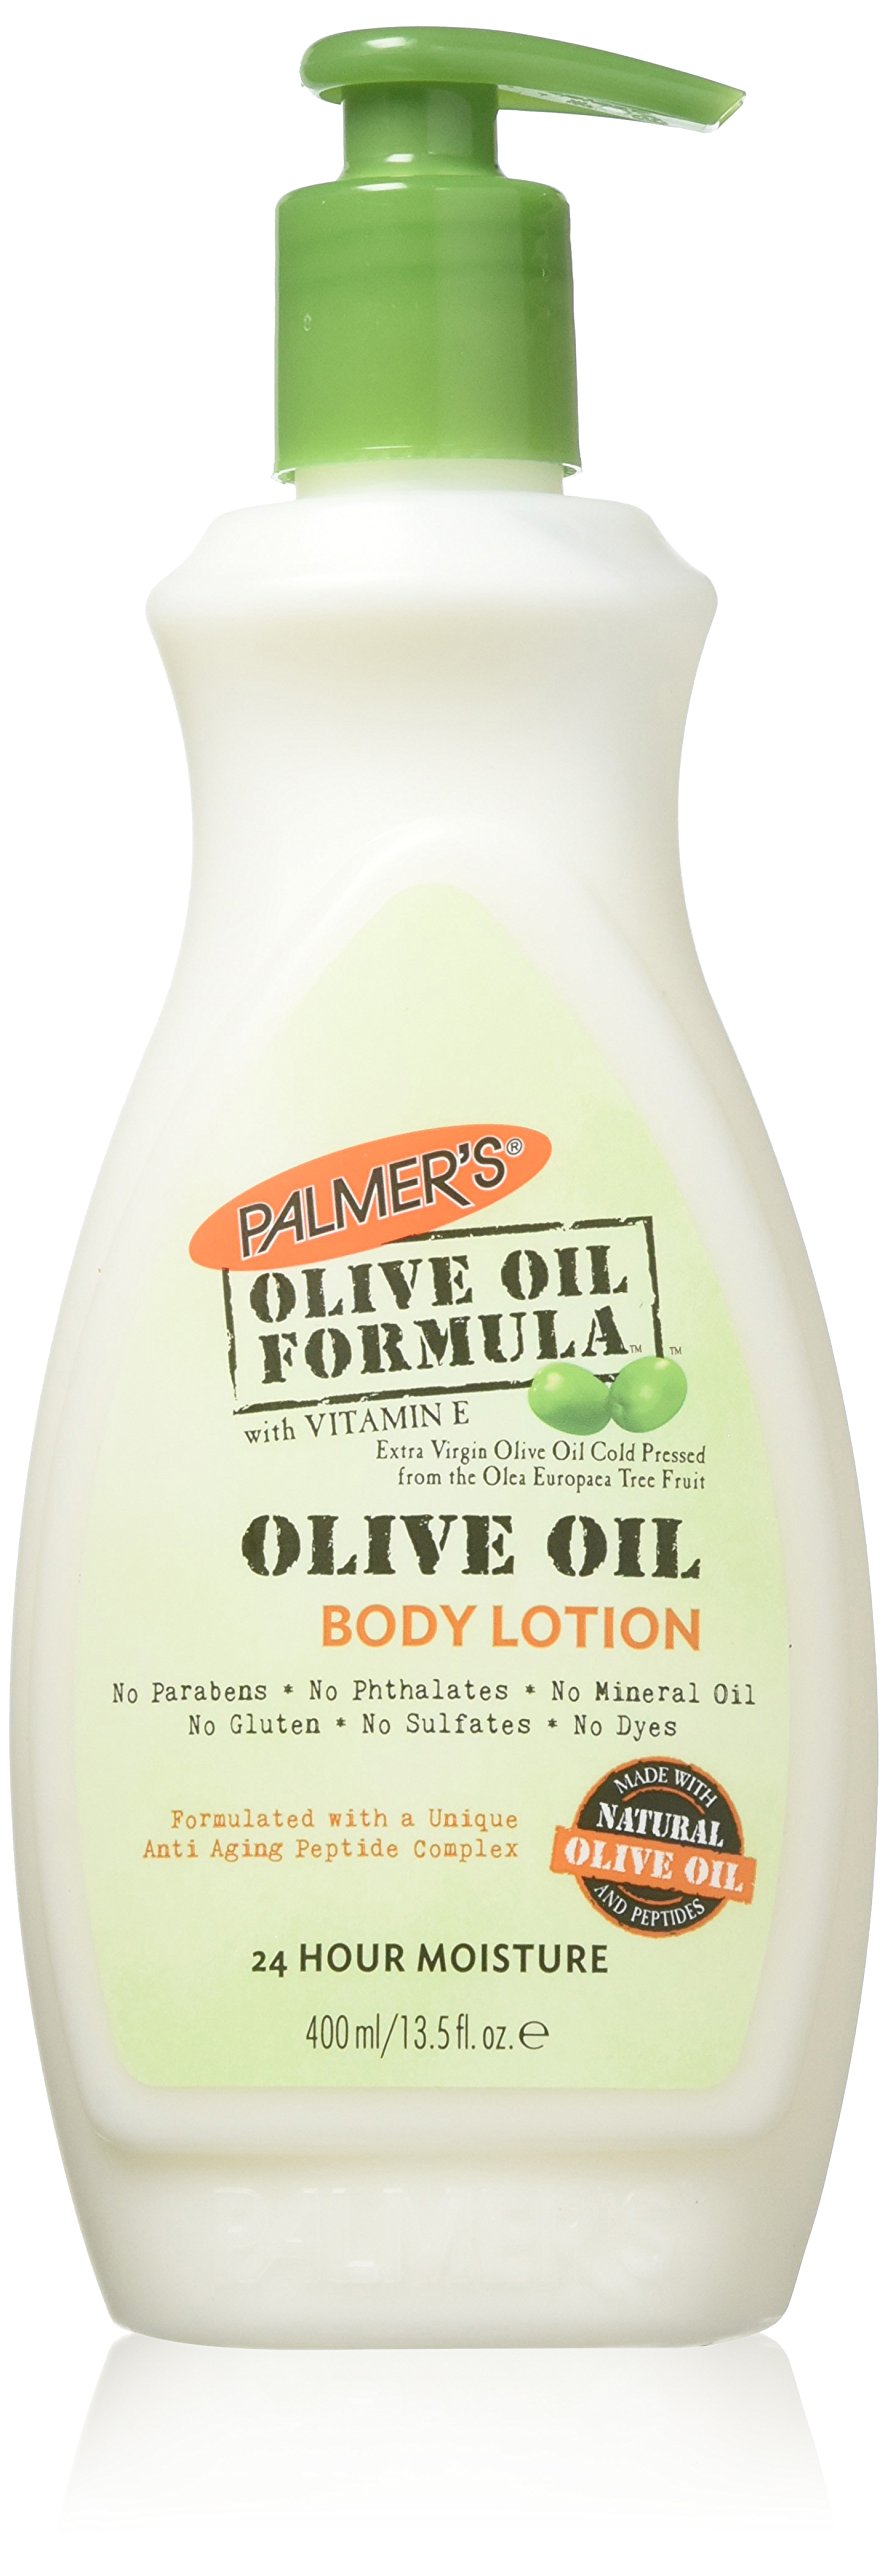 Palmers Therapy 13.5 oz. Olive Oil with Vitamin-E Lotion Pump by Palmer's